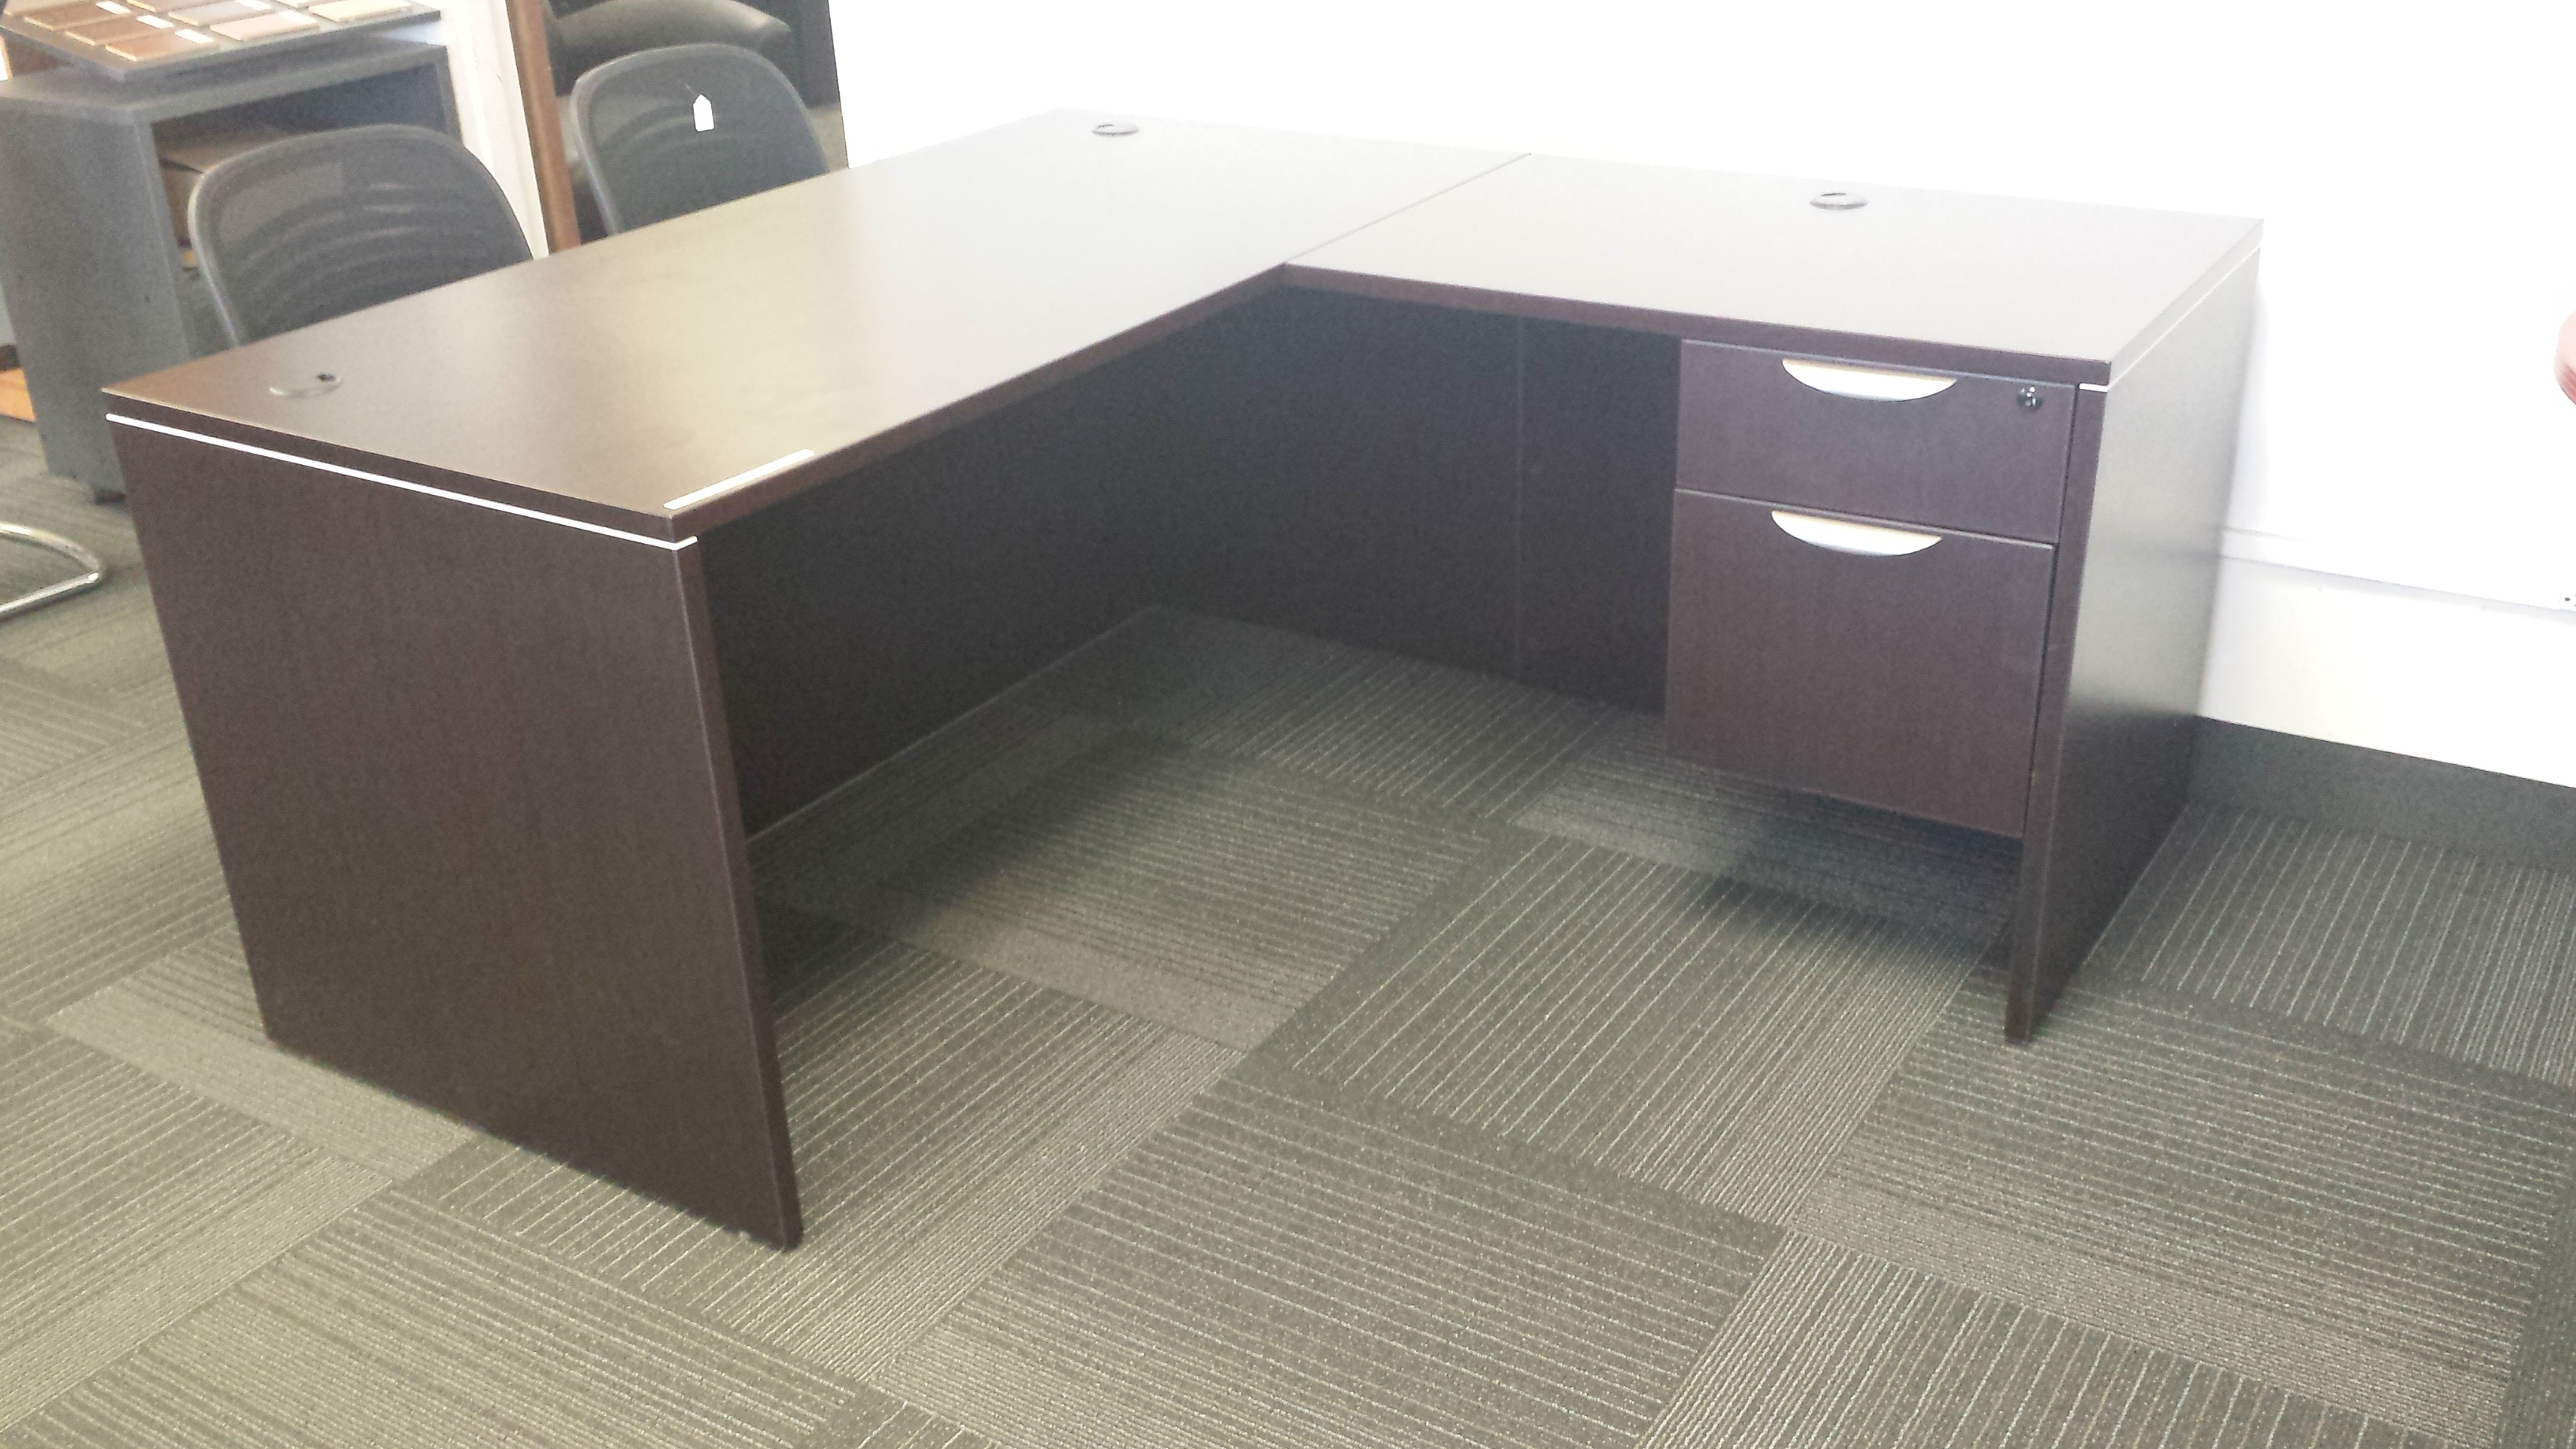 image los stores office desk full used furniture angeles inspirations size ideas of